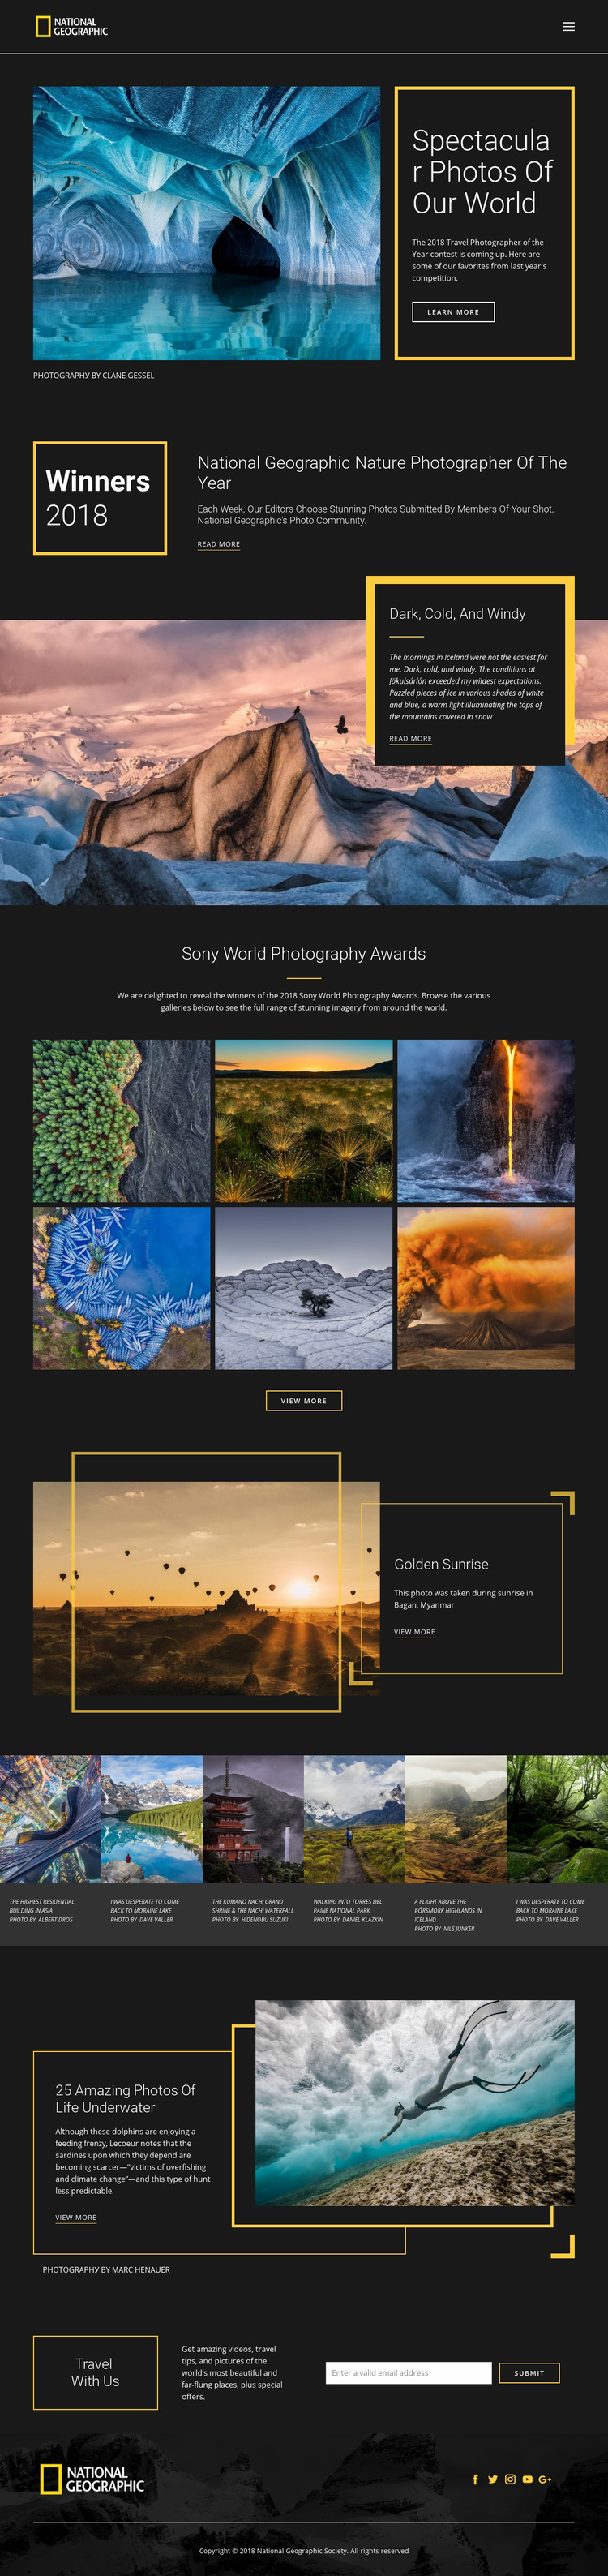 Pictures of nature Web Page Designer